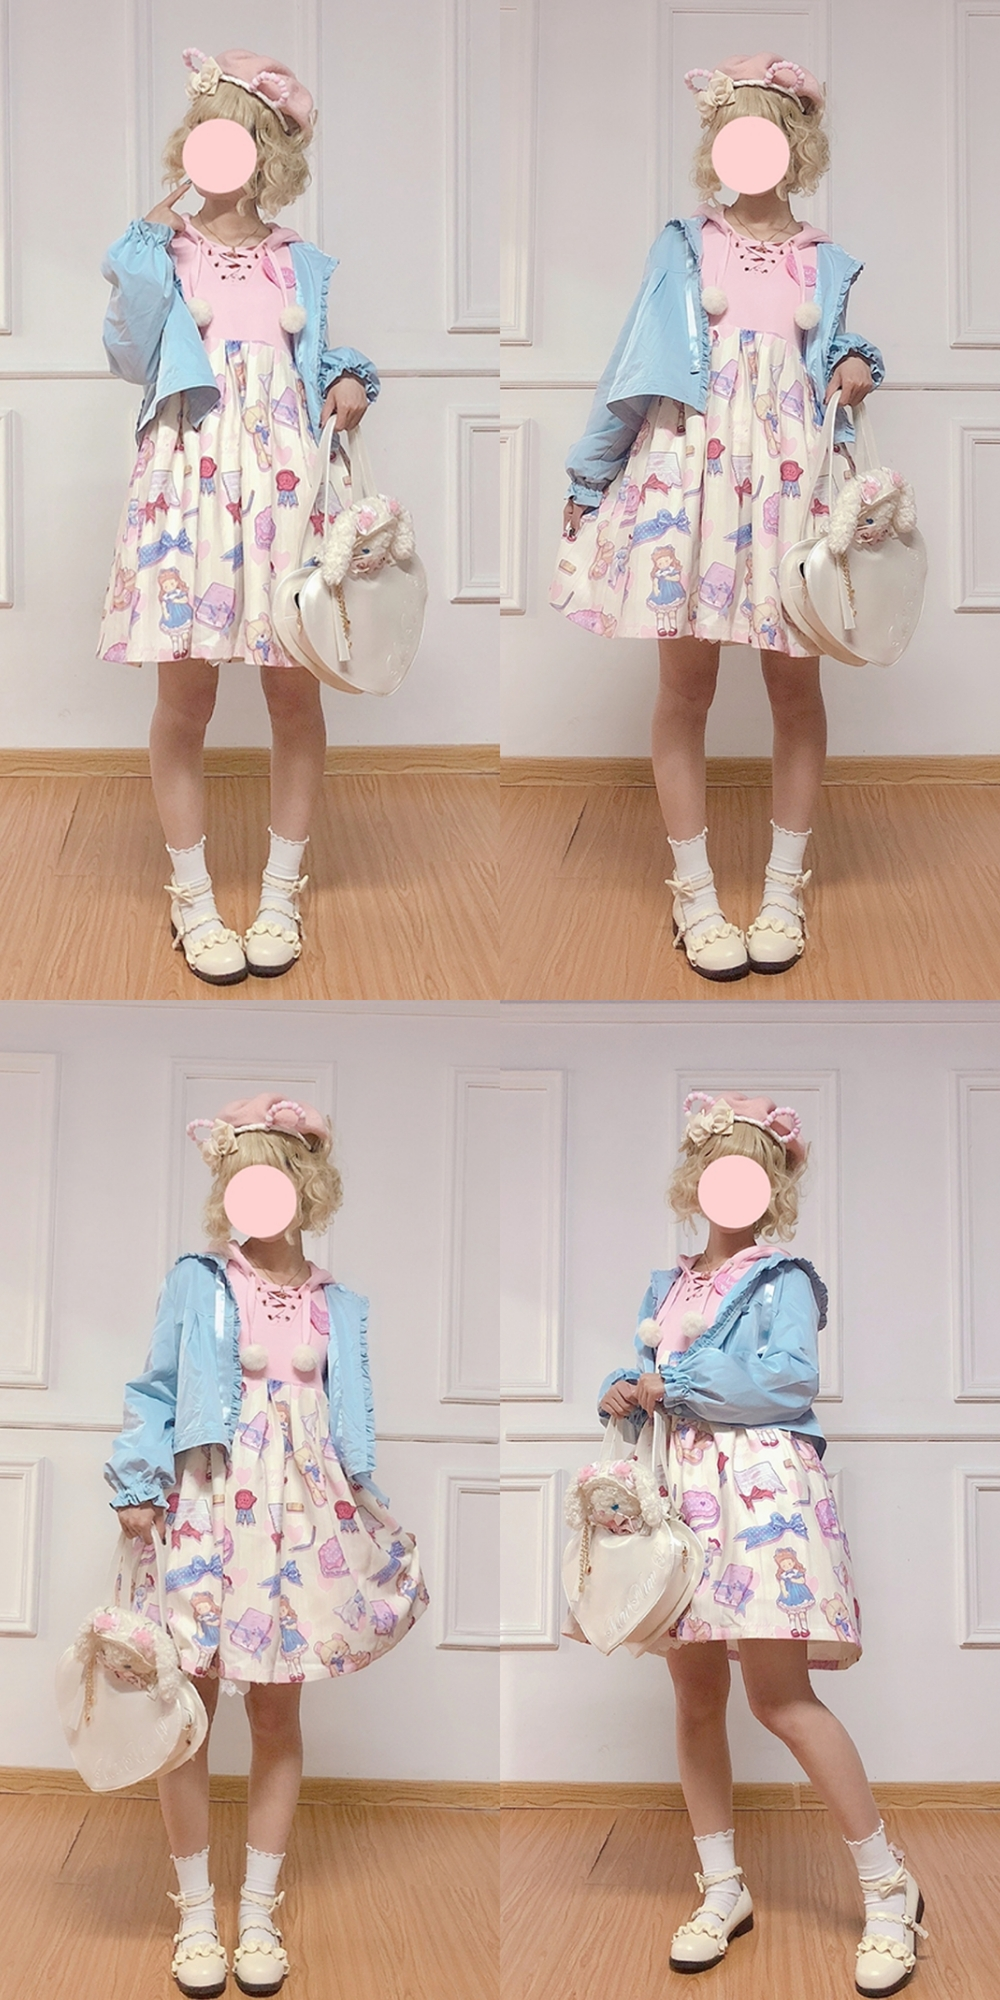 [to be delivered after the year] Wei dress is a lovely girls Lolita Dress